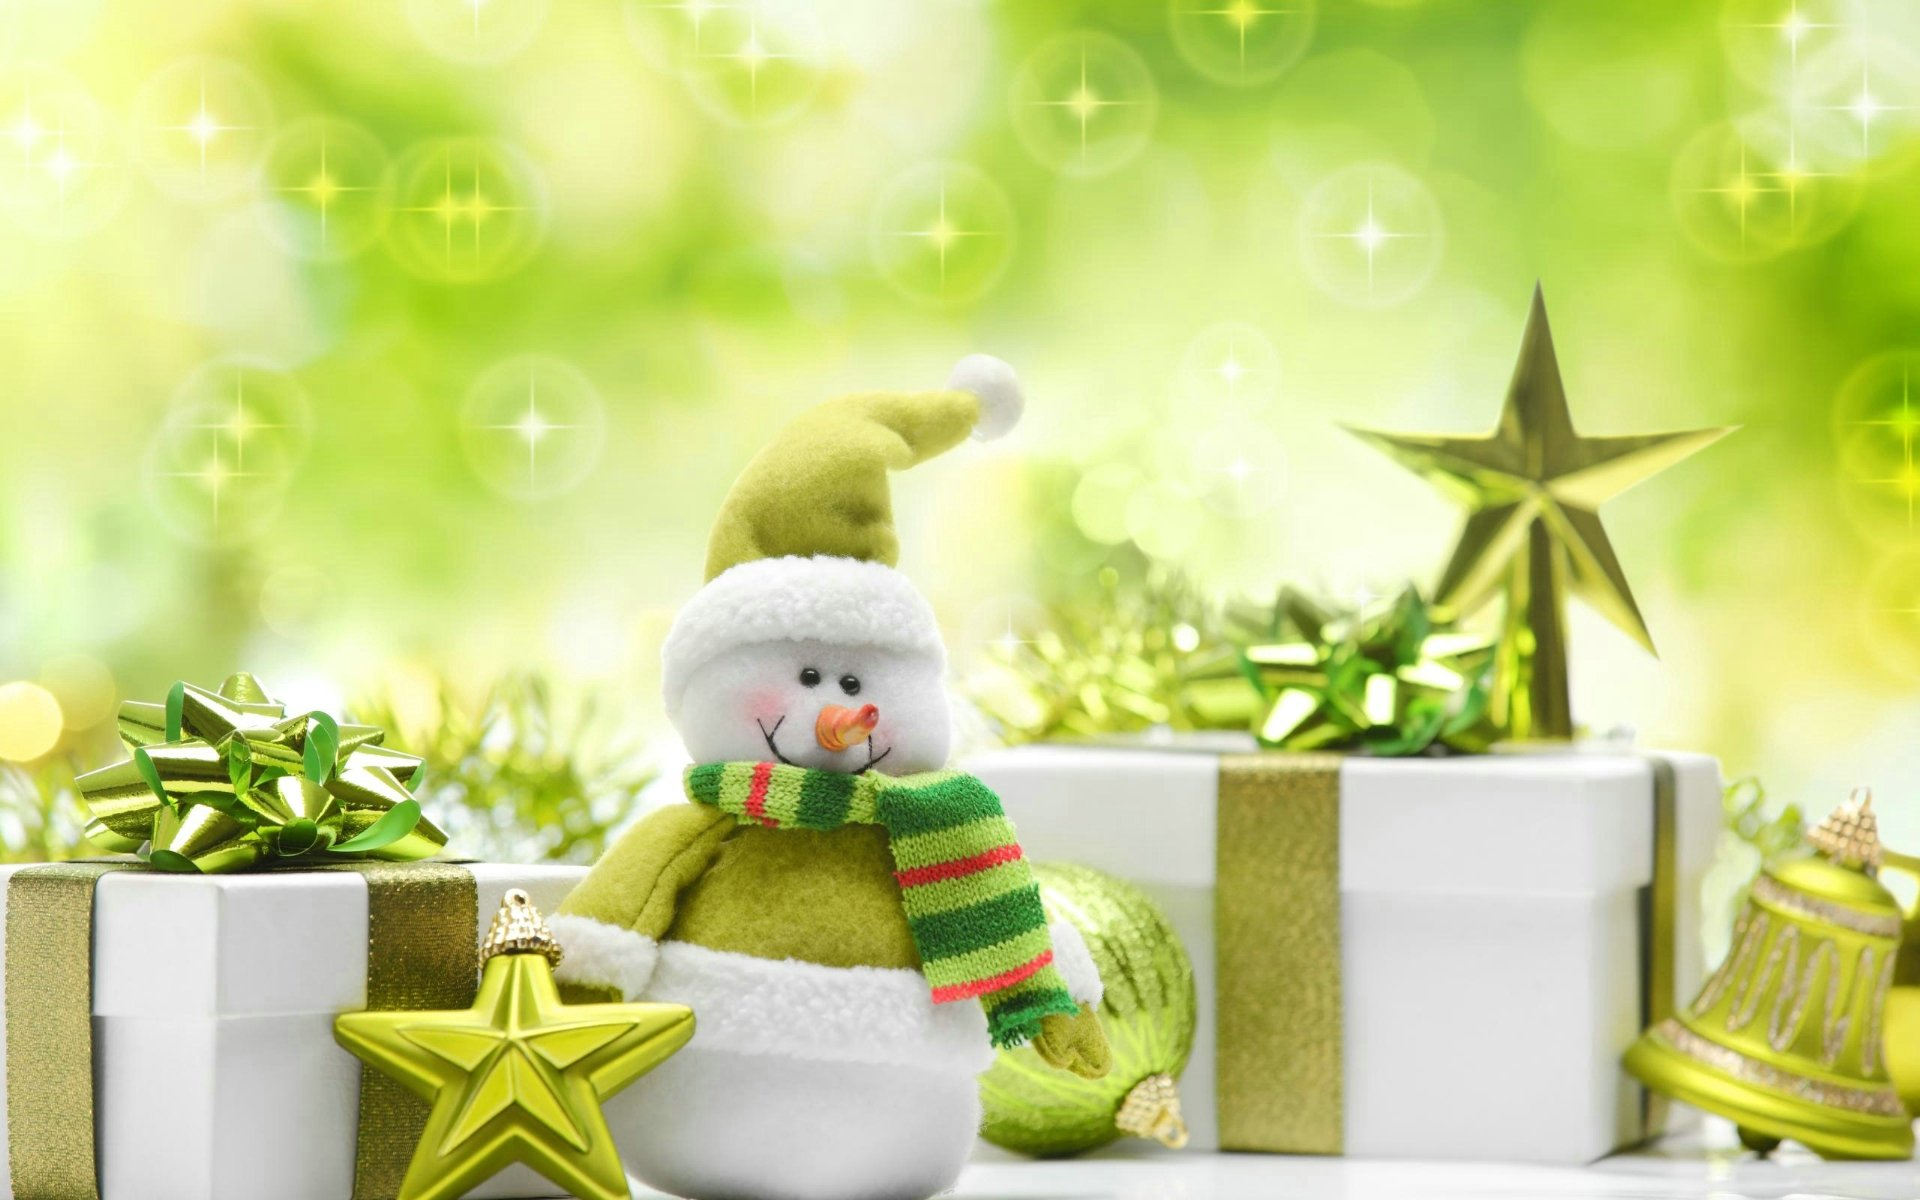 Green Christmas Presents - Wallpaper, High Definition, High Quality ...